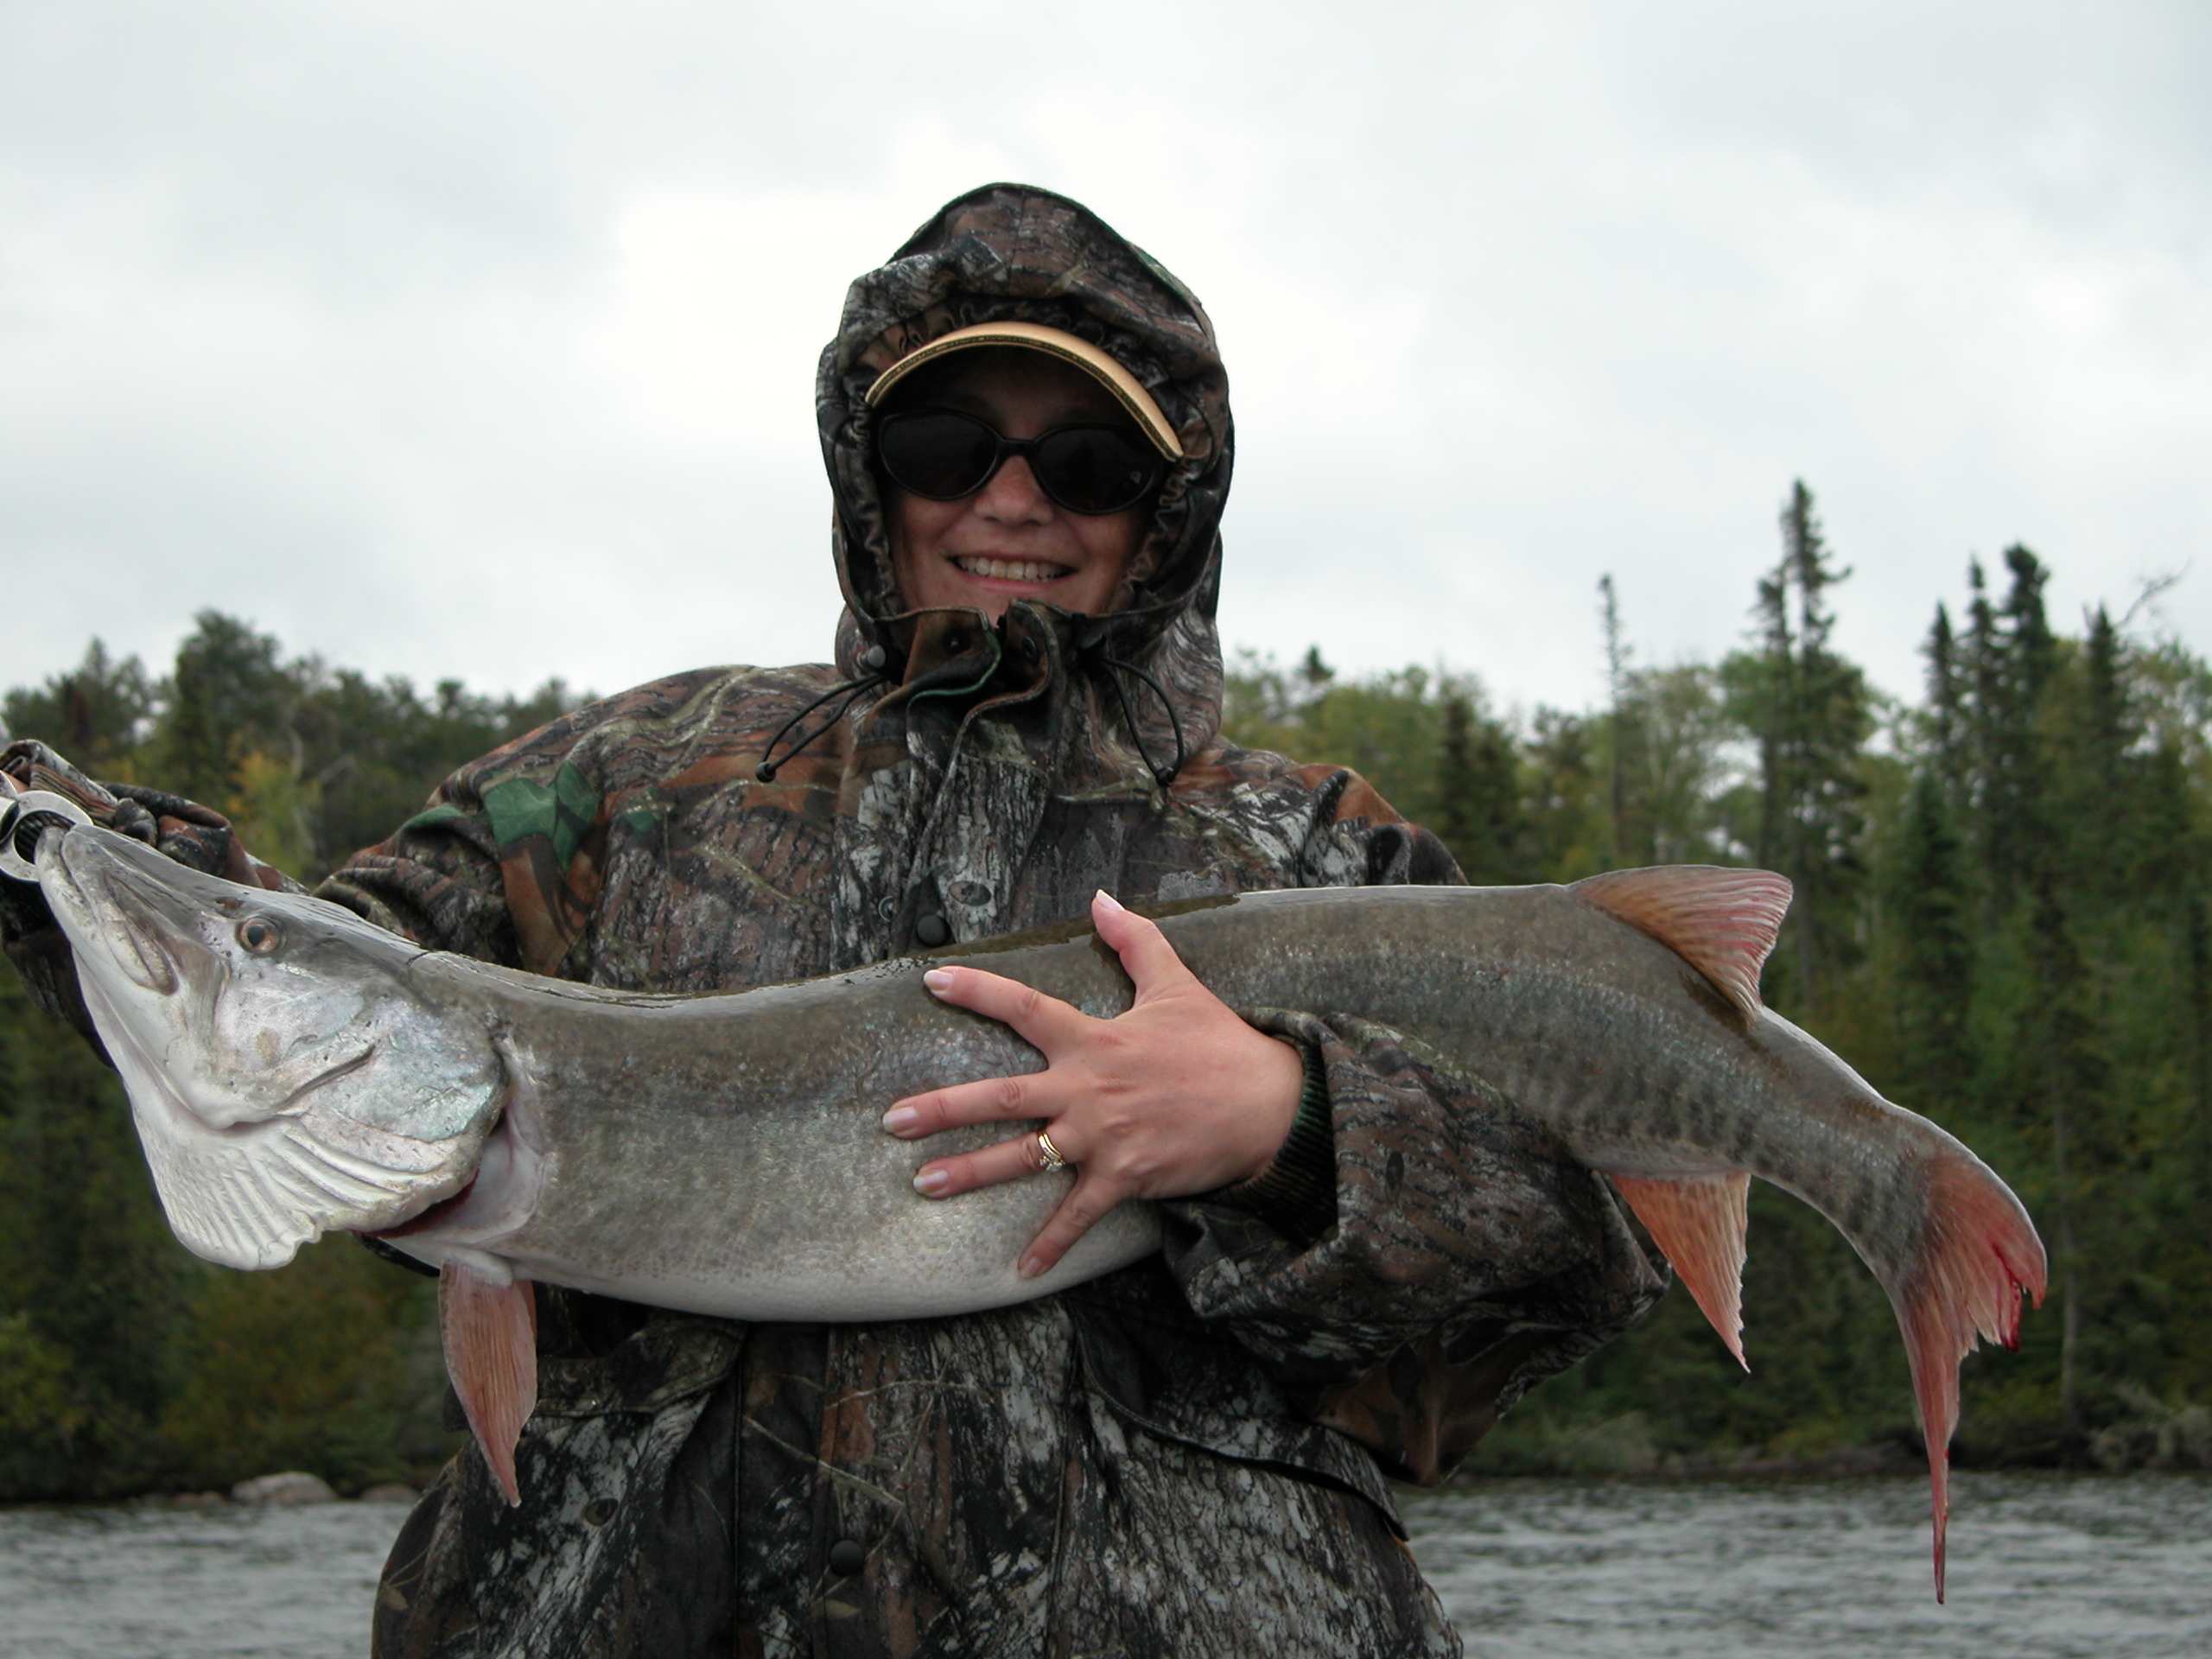 Nice Muskie caught on Cedar Lake, Northwinds Canadian Outfitters